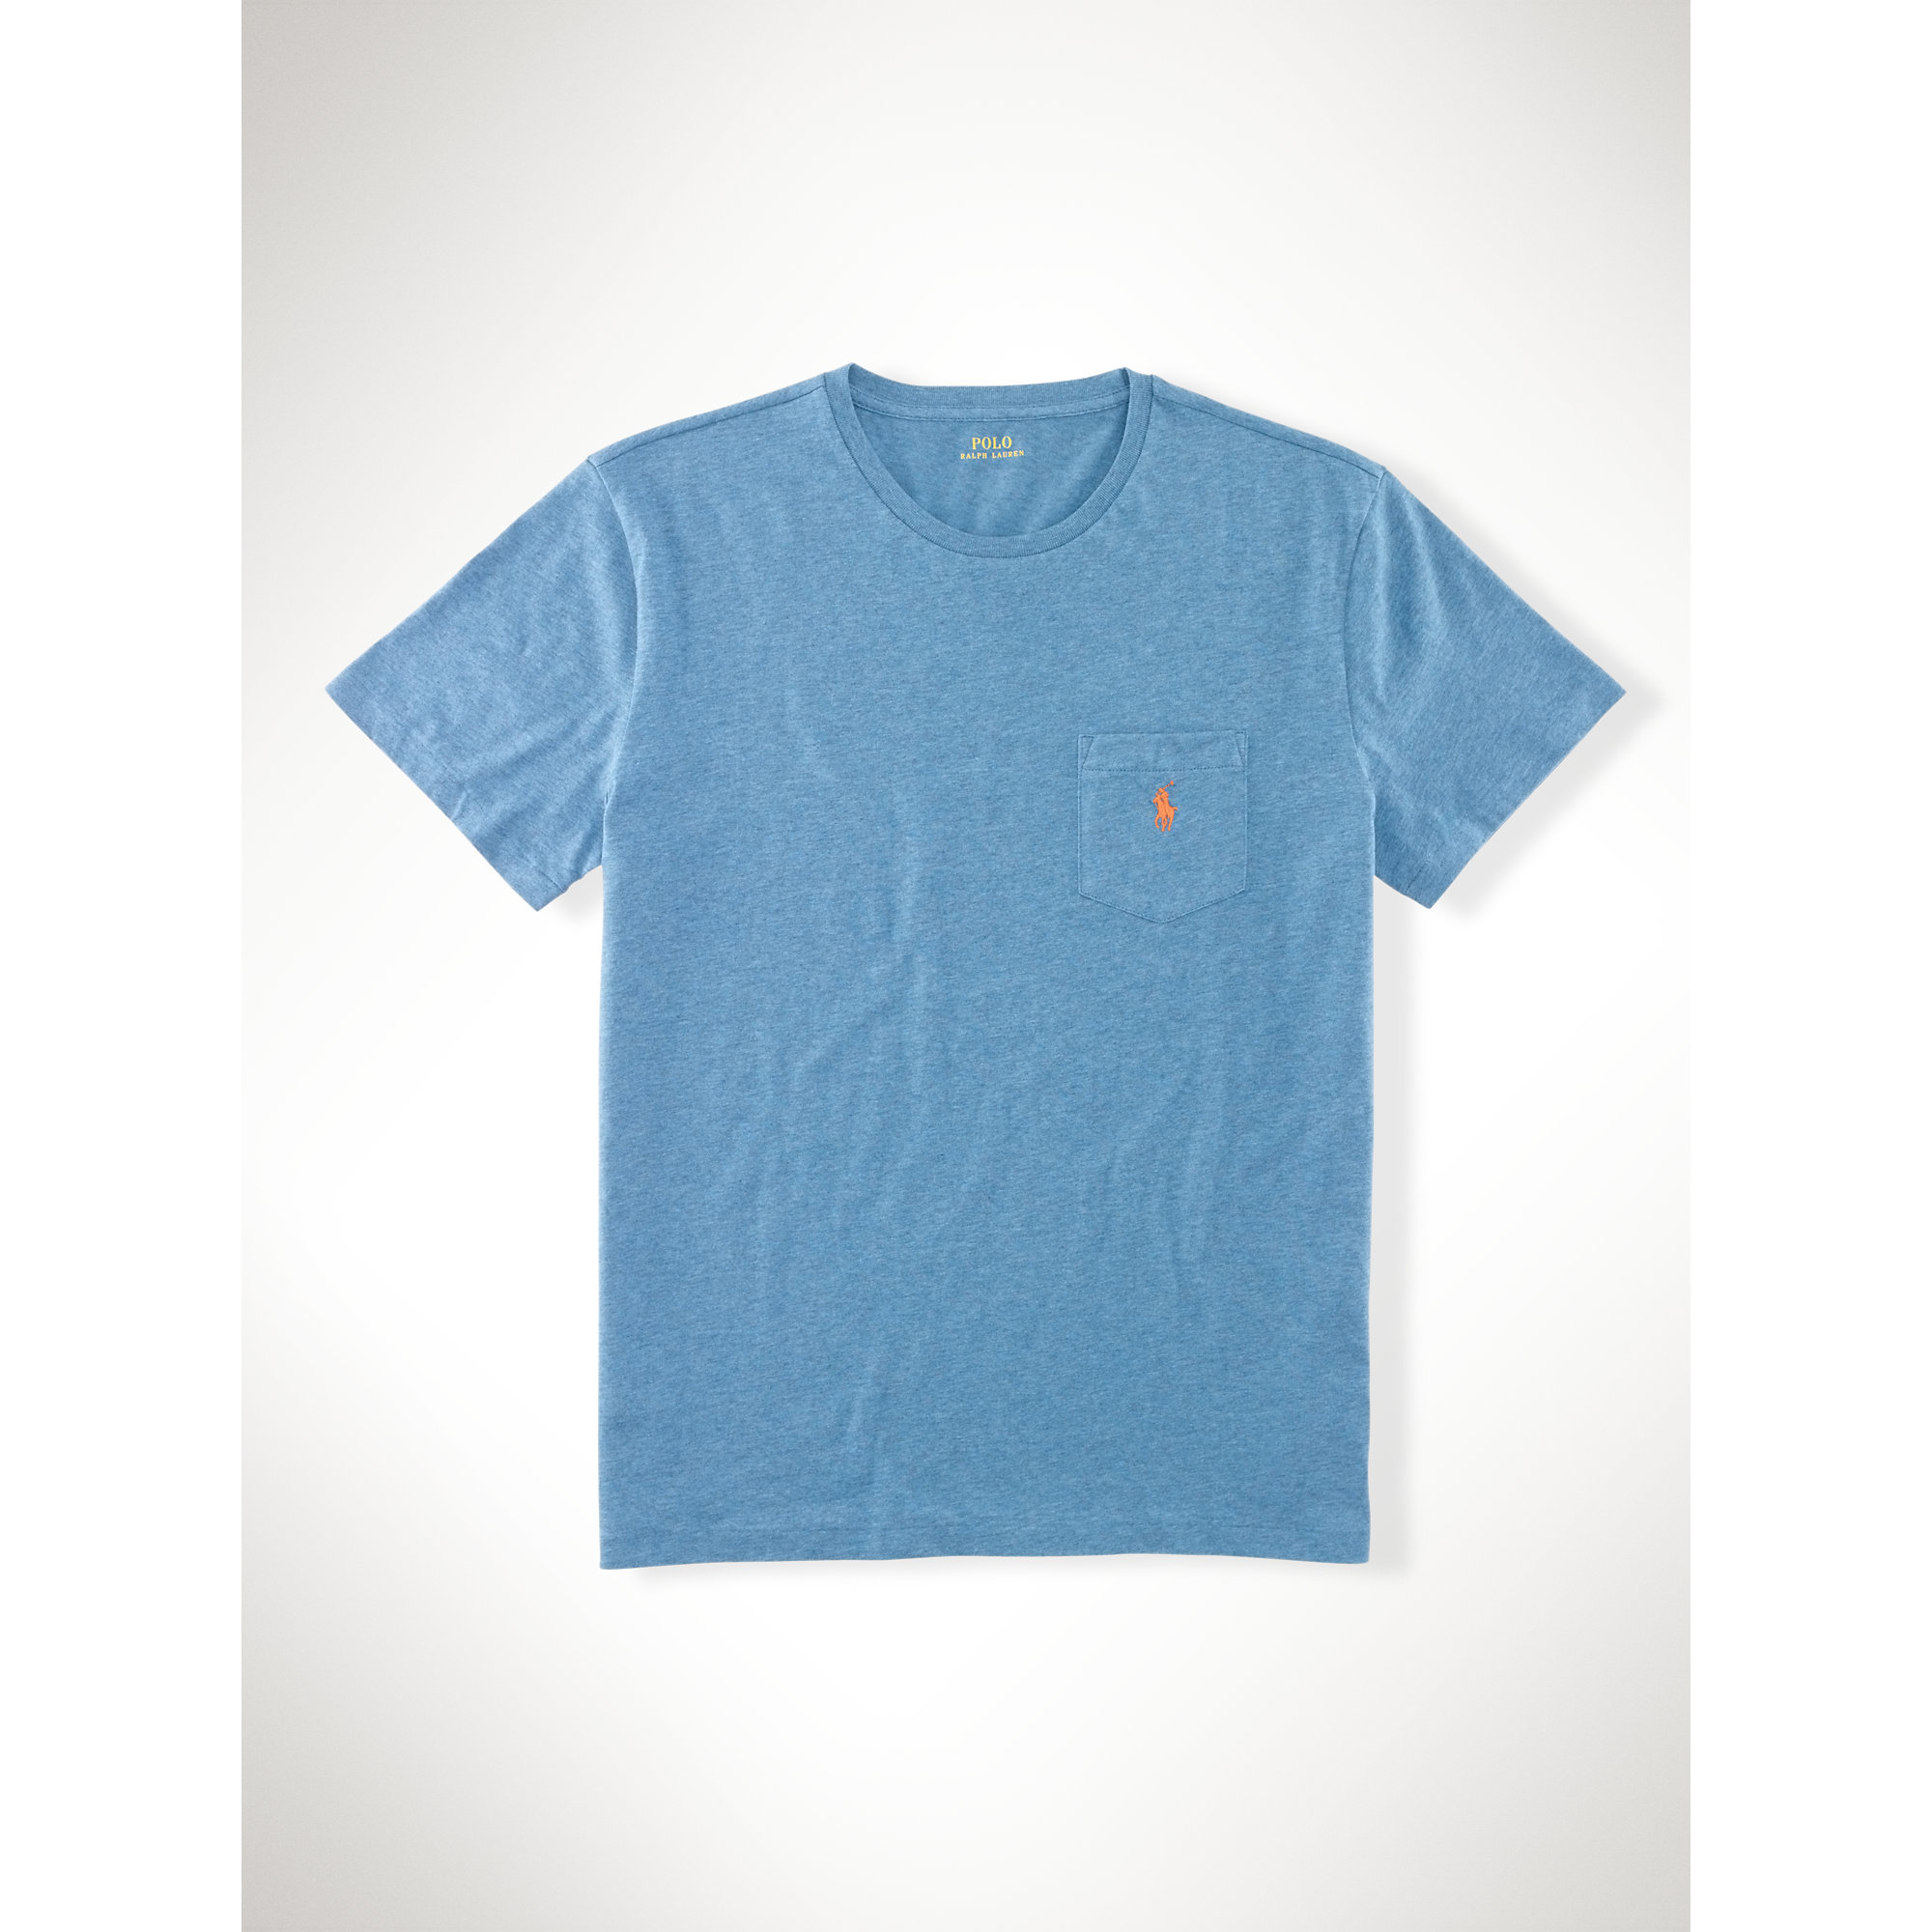 Polo ralph lauren classic fit cotton pocket tee in blue for Polo t shirts with pocket online